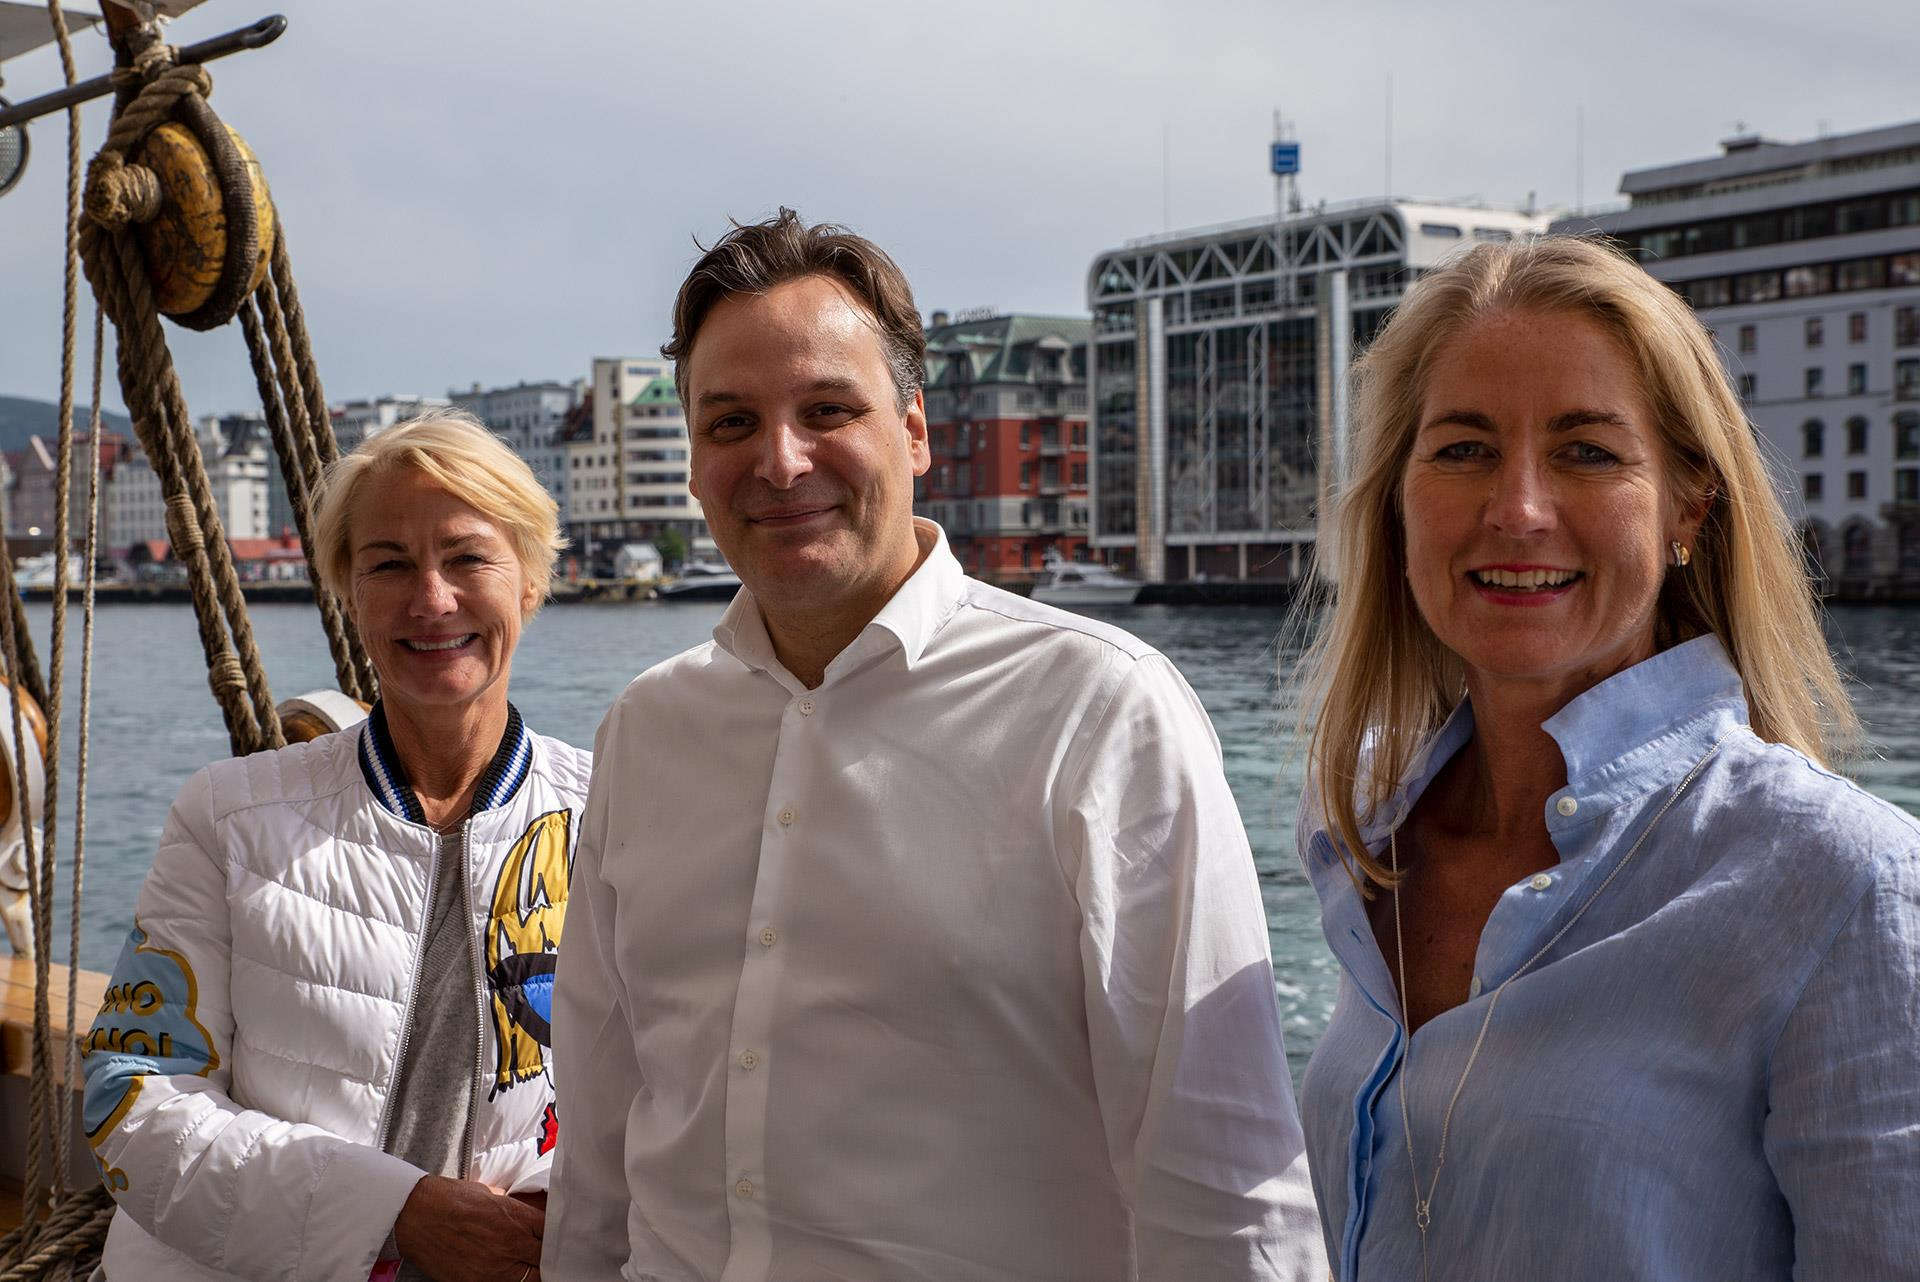 From left to right: Elisabeth Grieg, Matt Duke and Camilla Grieg.